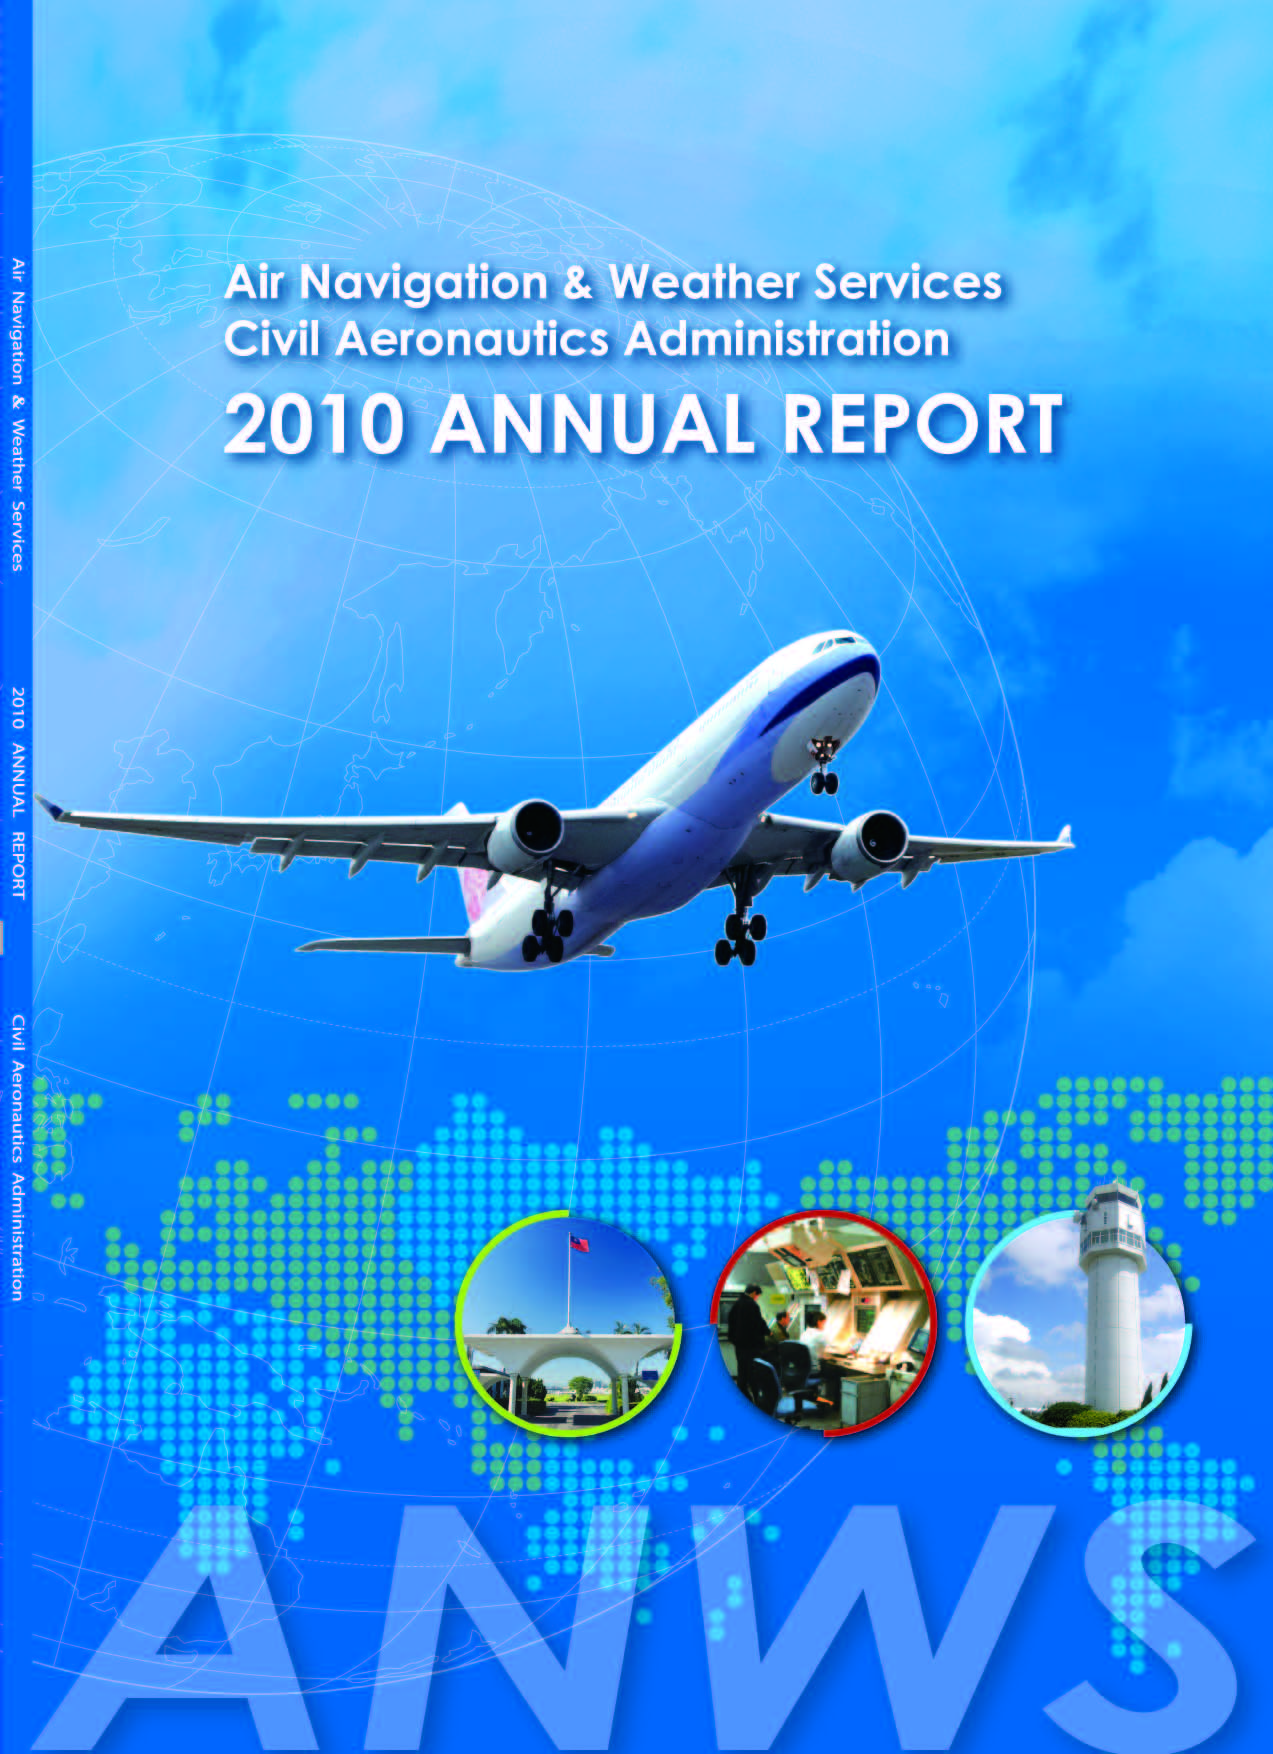 Air Navigation and Weather Services 2010 Annual Report